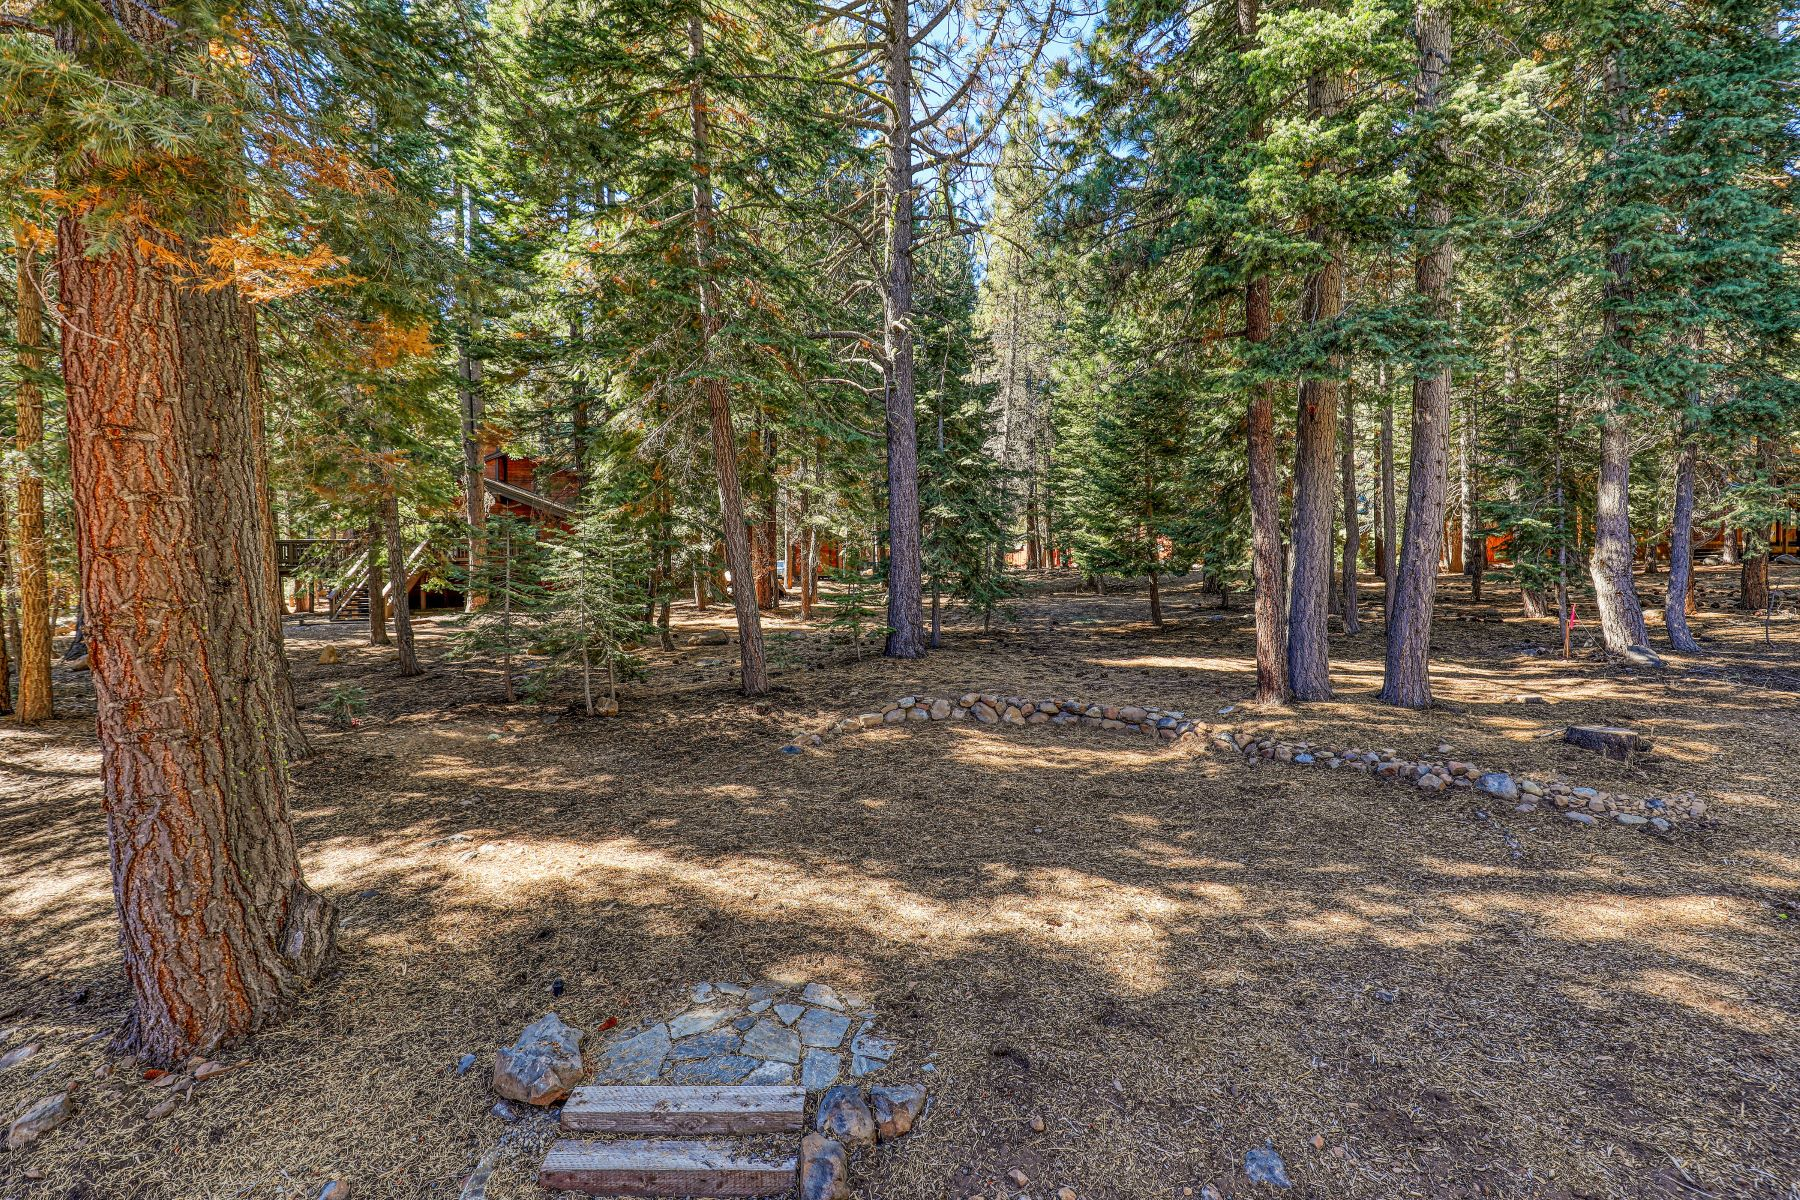 Additional photo for property listing at 13581 Pathway Avenue, Truckee, CA 96161 13581 Pathway Avenue Truckee, California 96161 United States